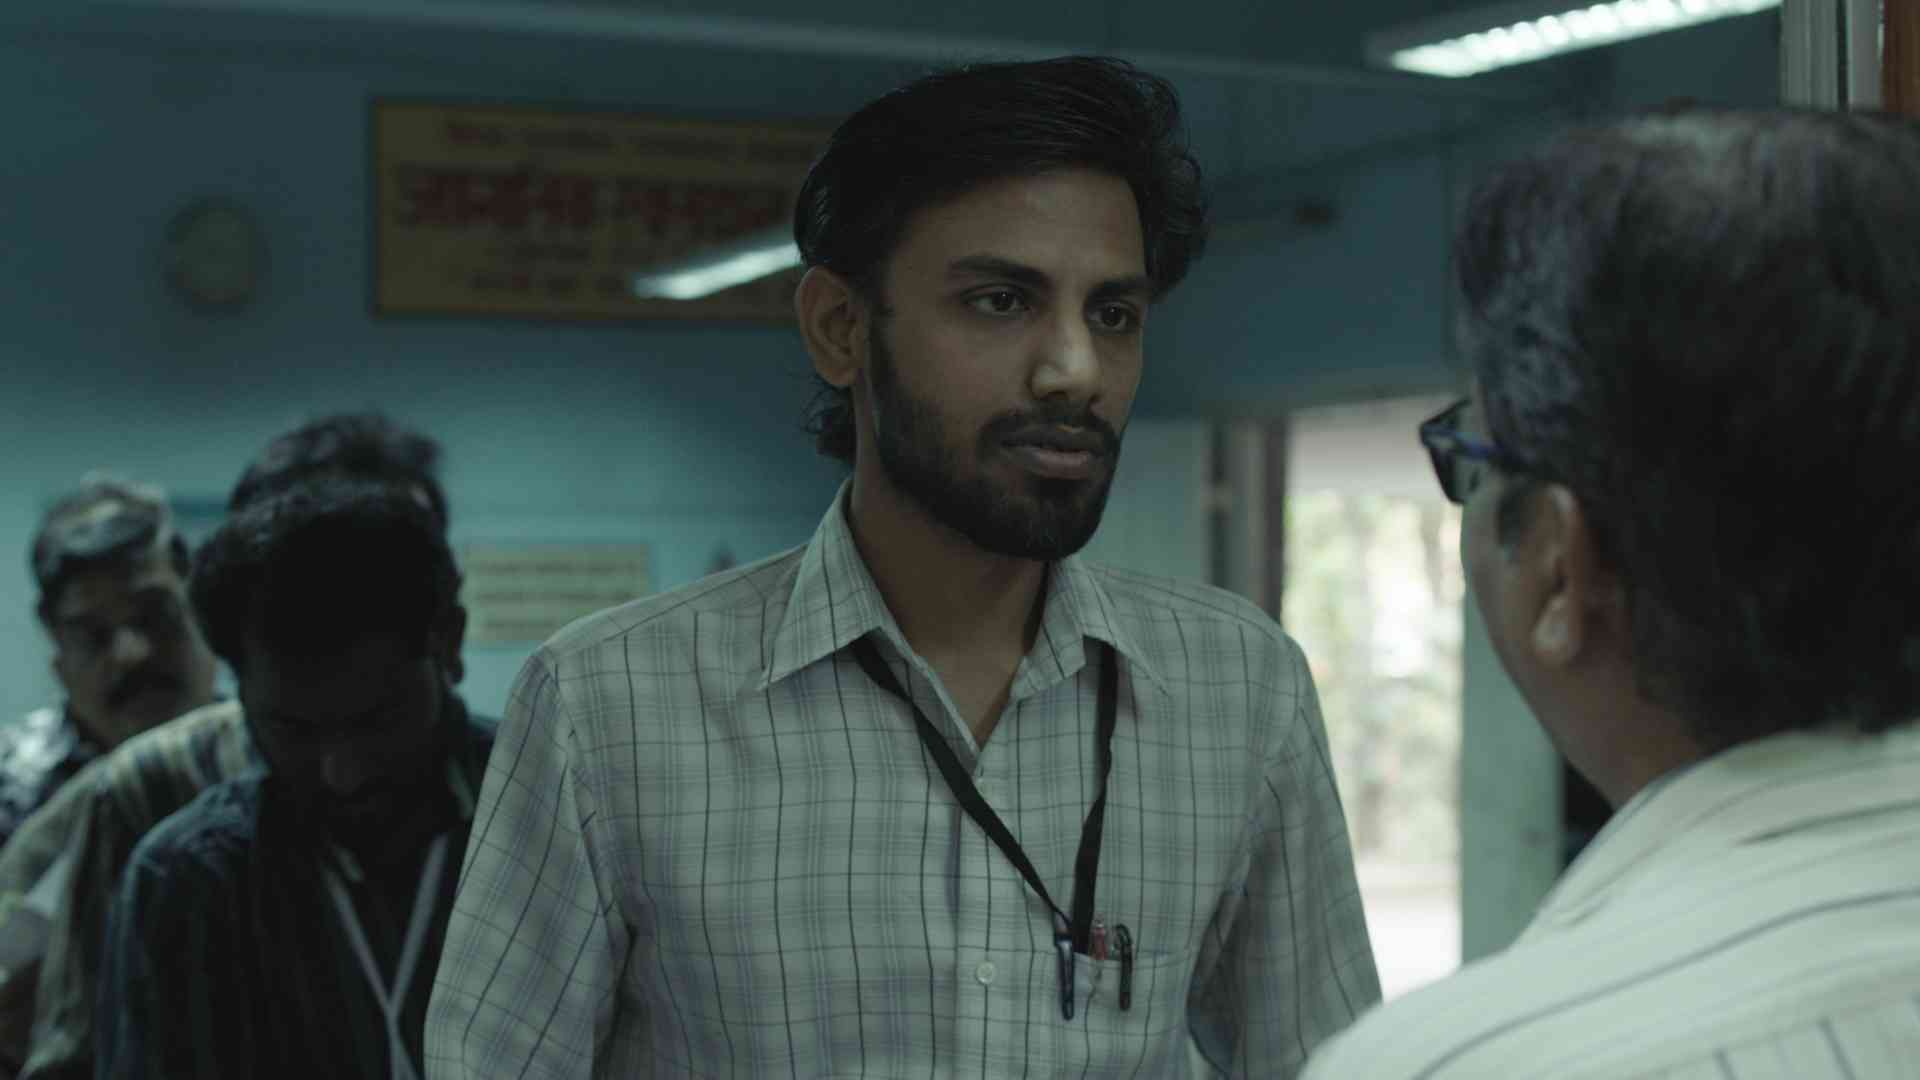 Biswa Kalyan Rath in Laakhon Mein Ek season two. Courtesy Amazon Prime Video.